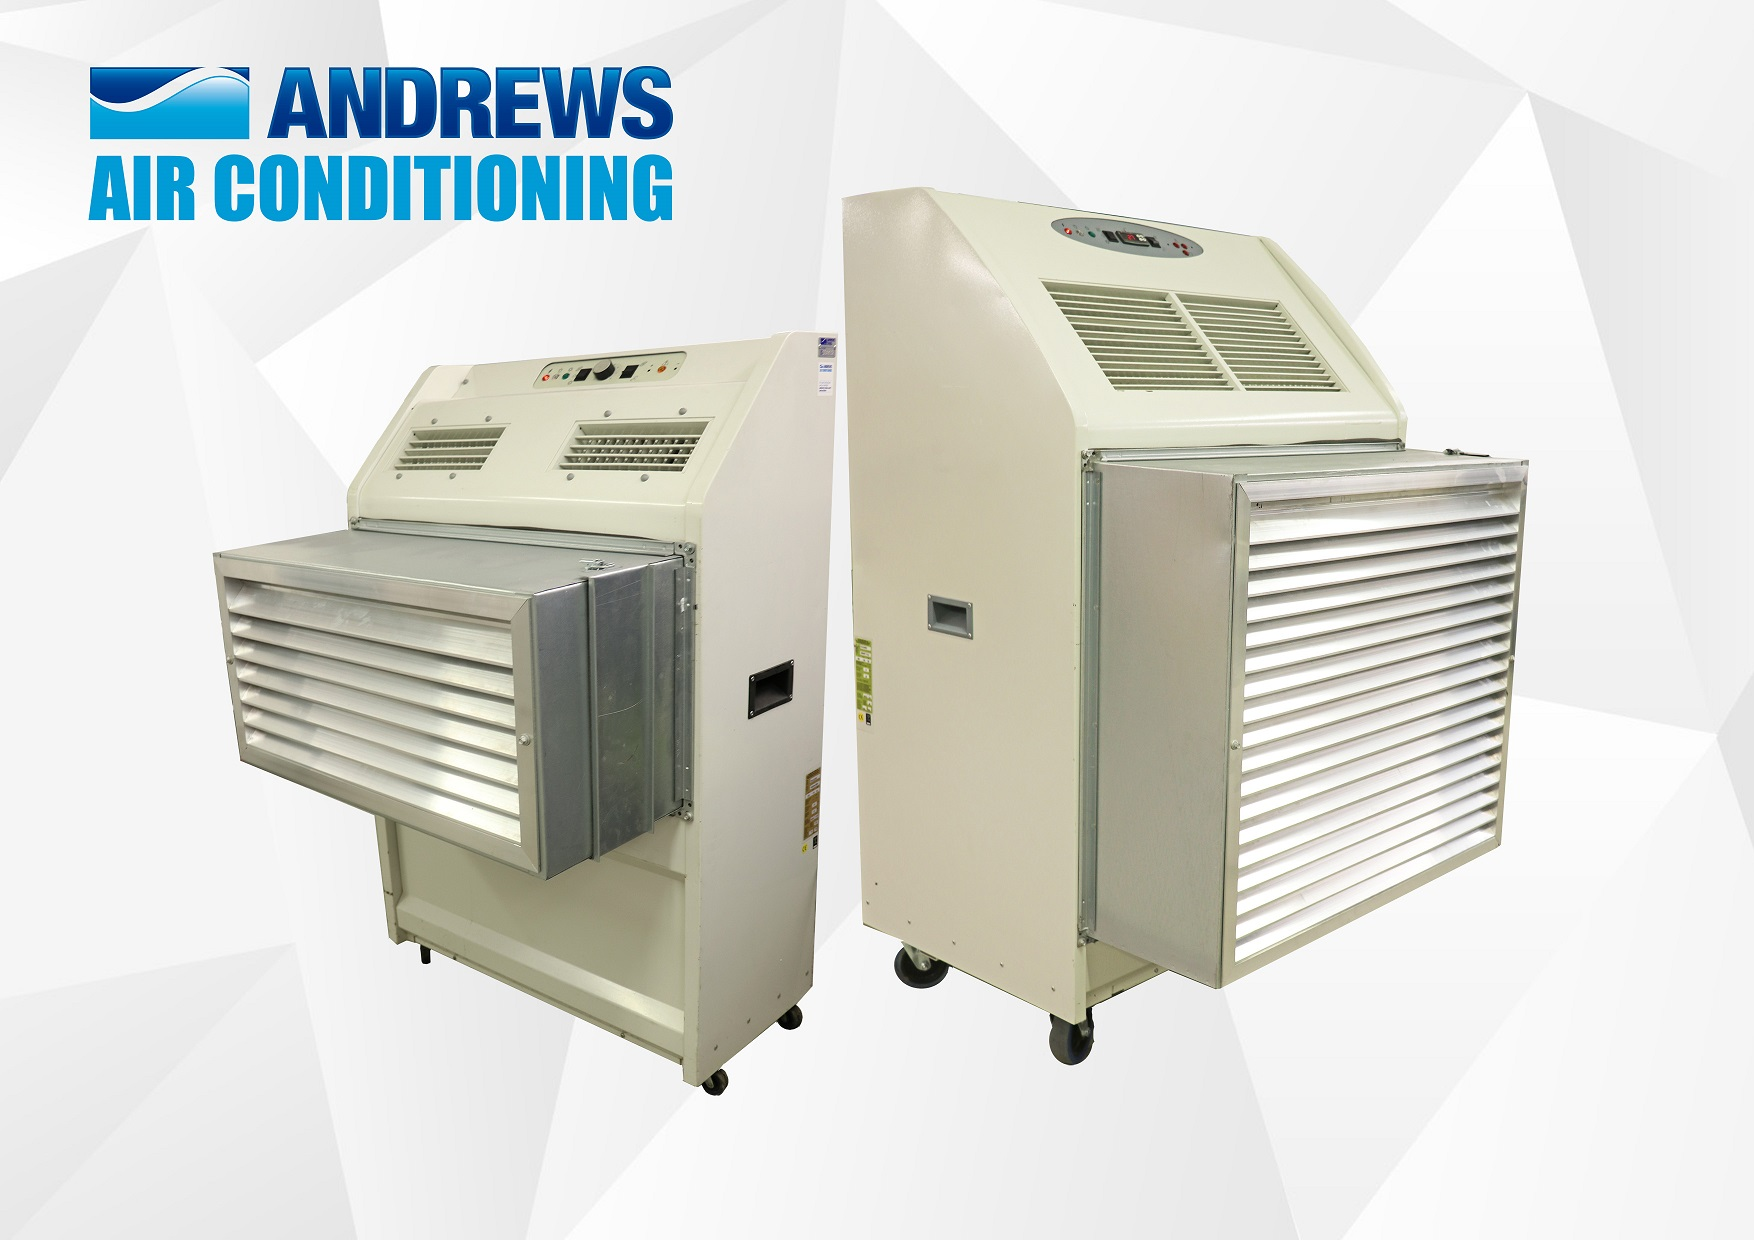 Air conditioners with advanced HEPA filtration now available for hire